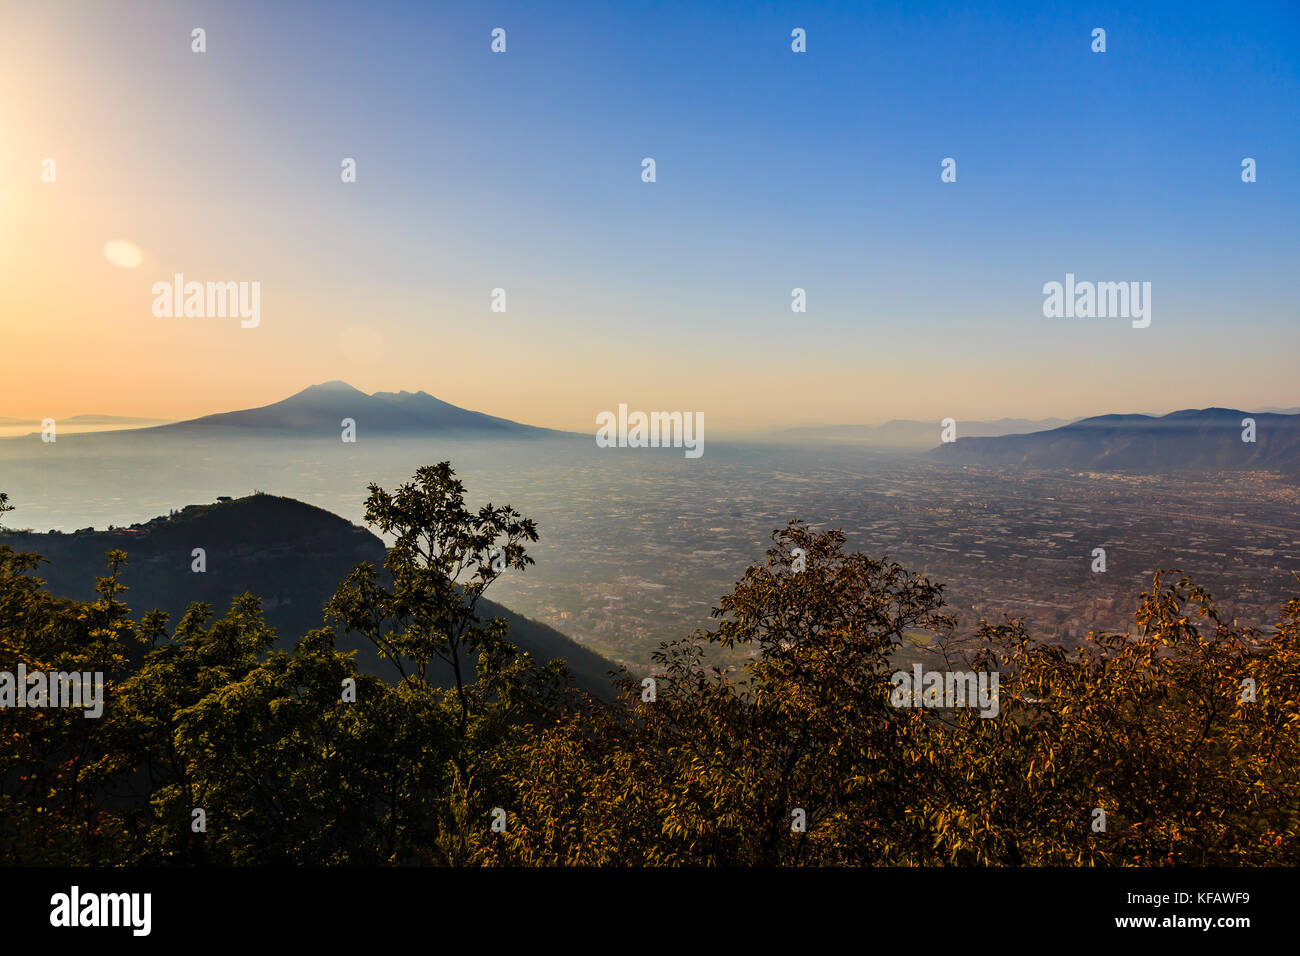 View of Mount Vesuvius from regional park of the Lattari Mountains, Italy - Stock Image